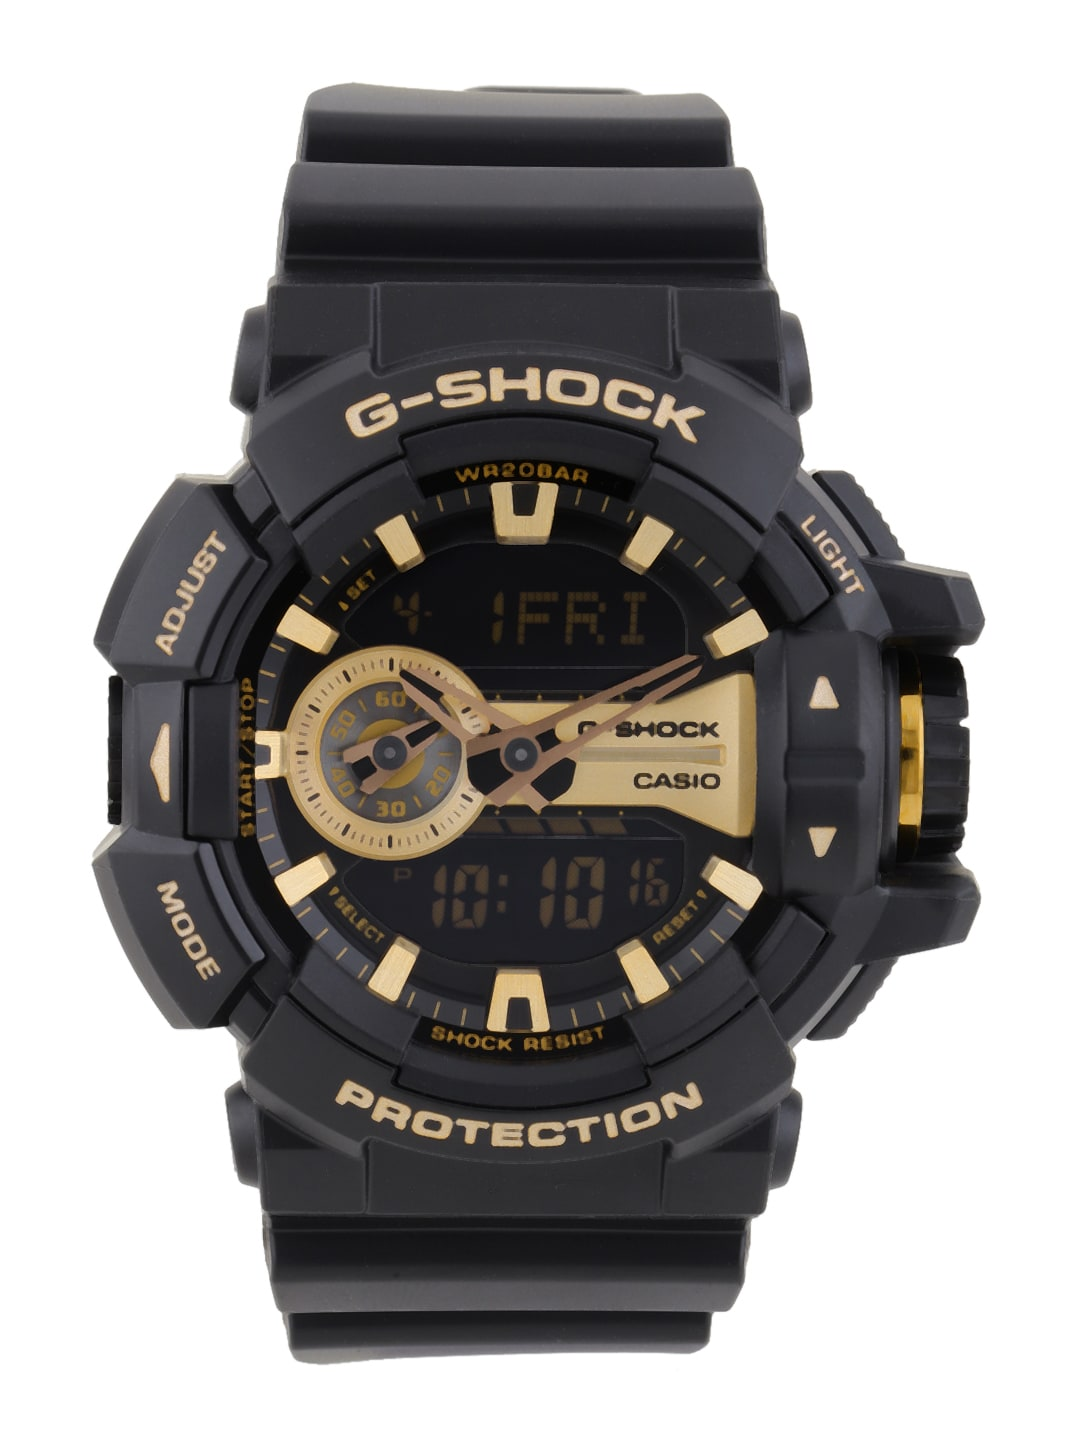 99c6000e882 Casio G Shock